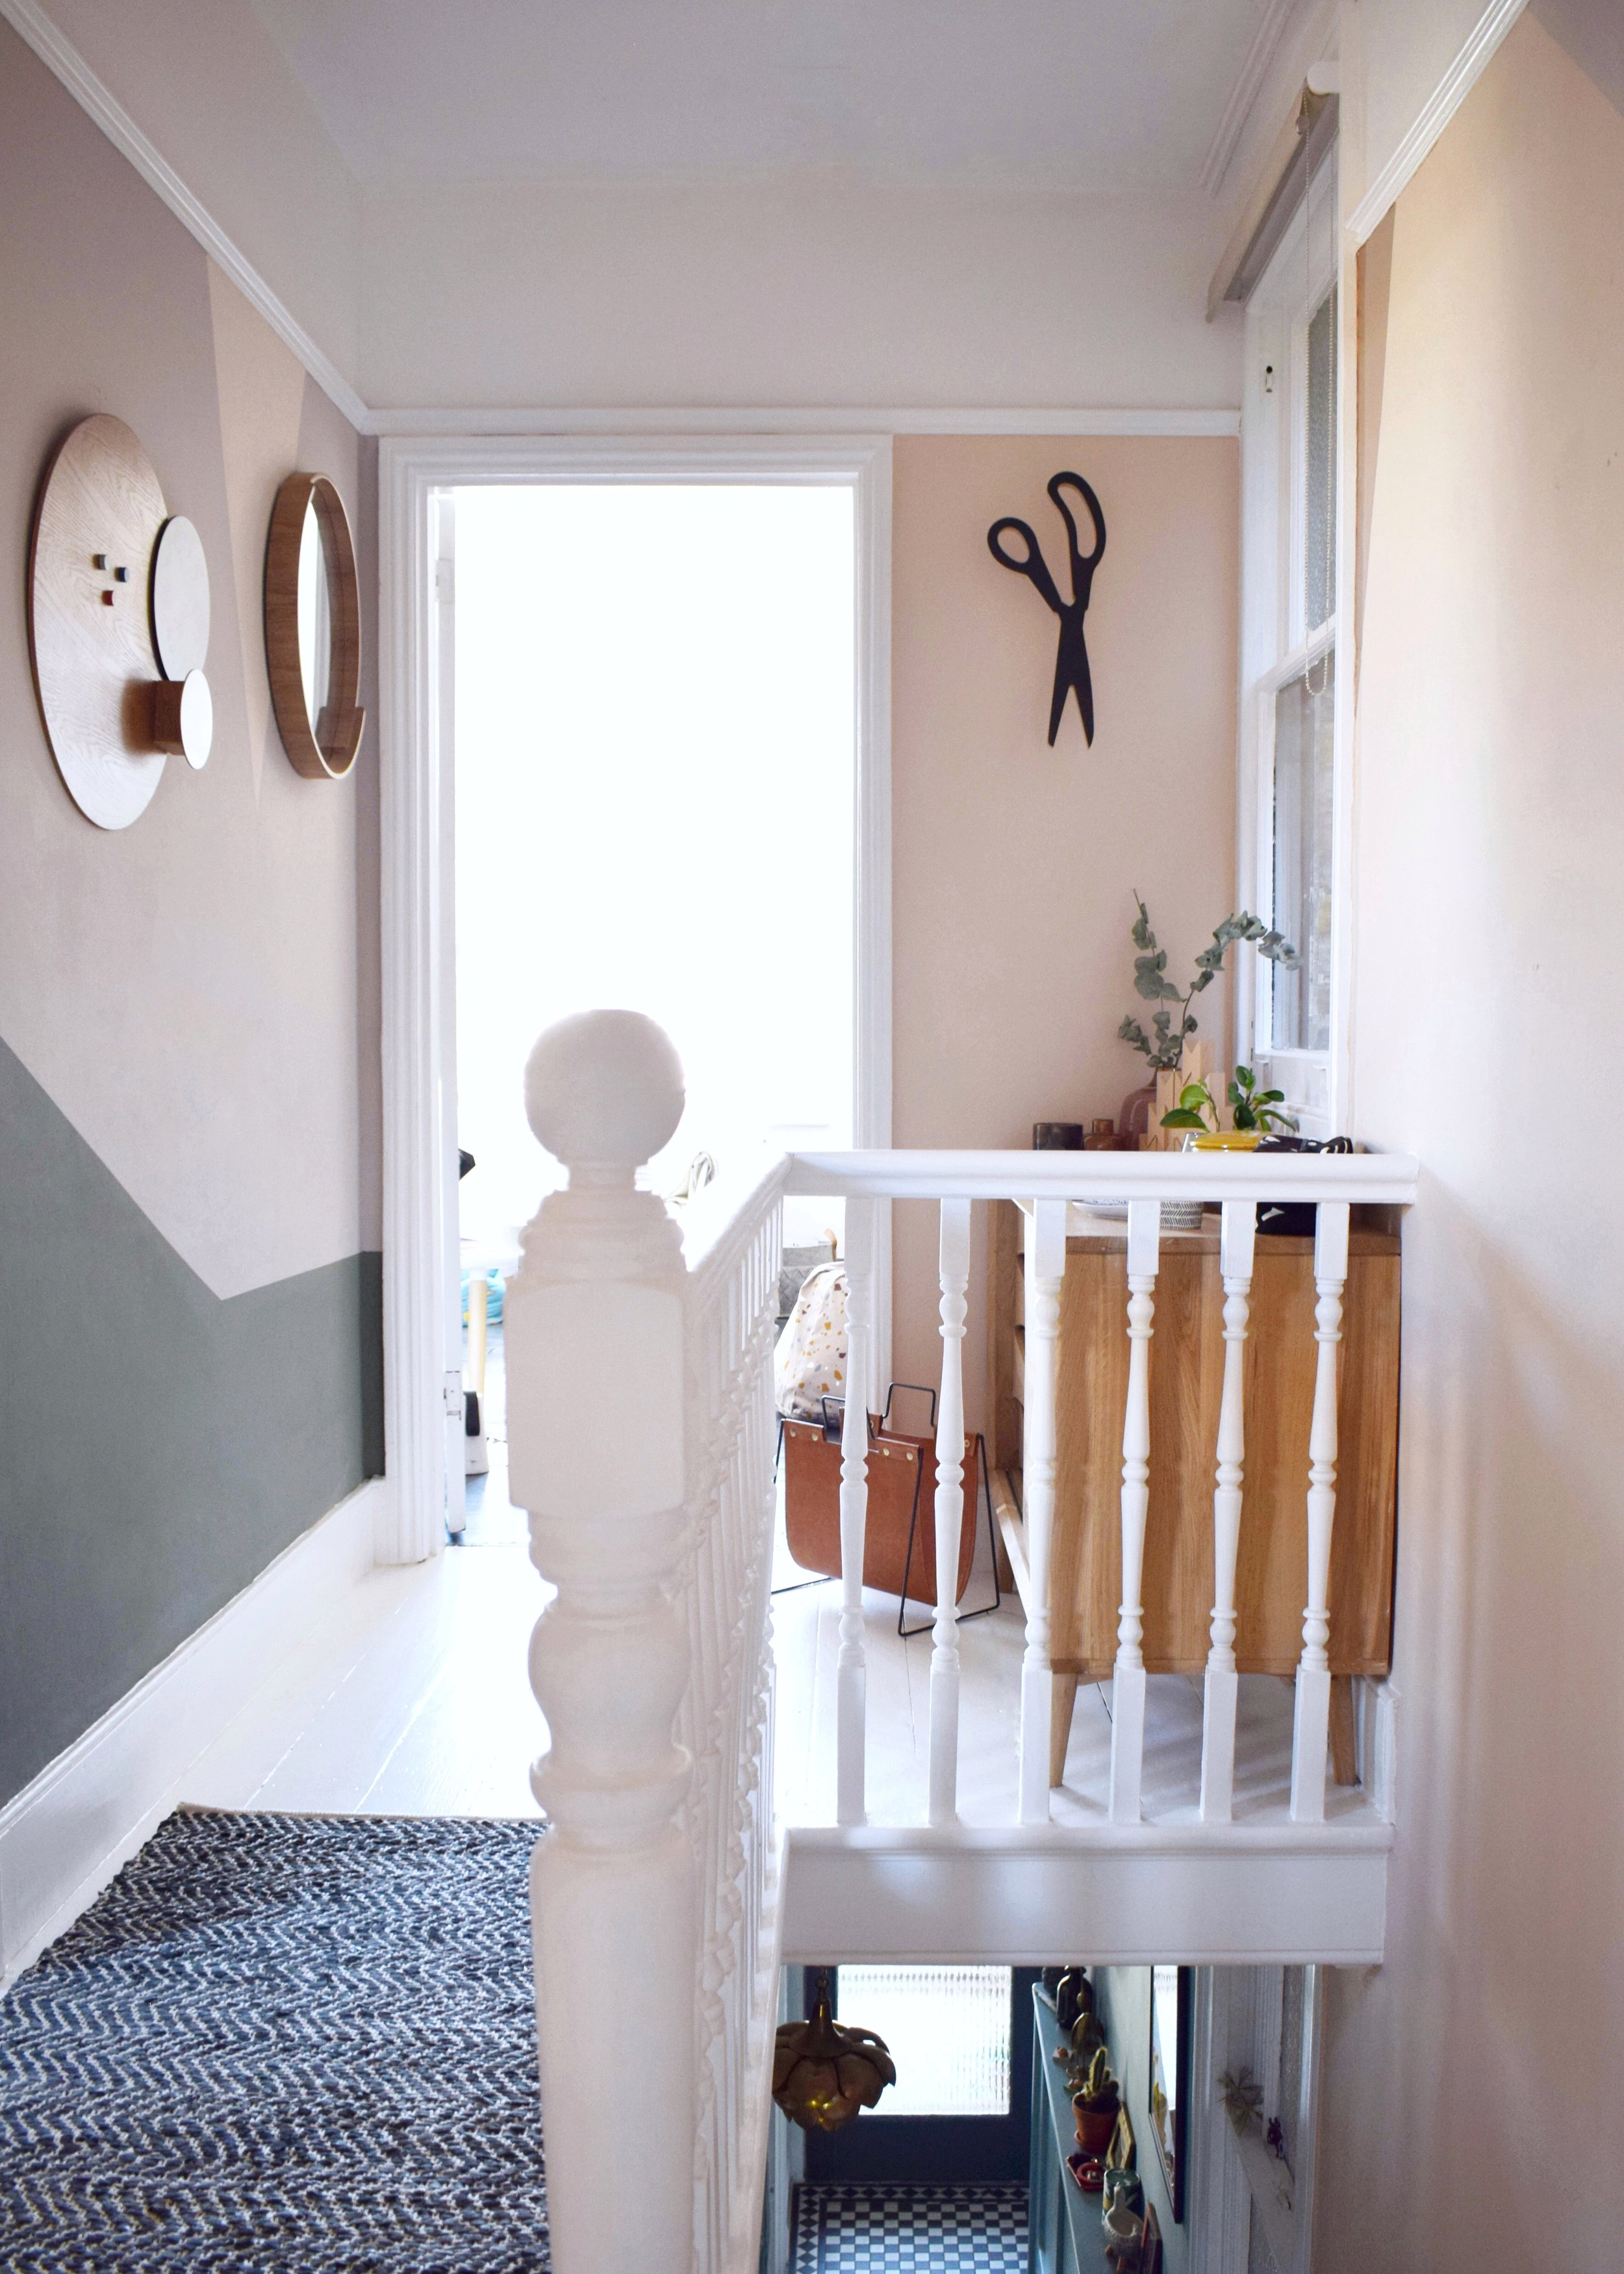 Revamp Restyle reveal hallway makeover, peach geometric colour wall, white painted floors, natural warm neurtral tones interior design (4) copy.jpg